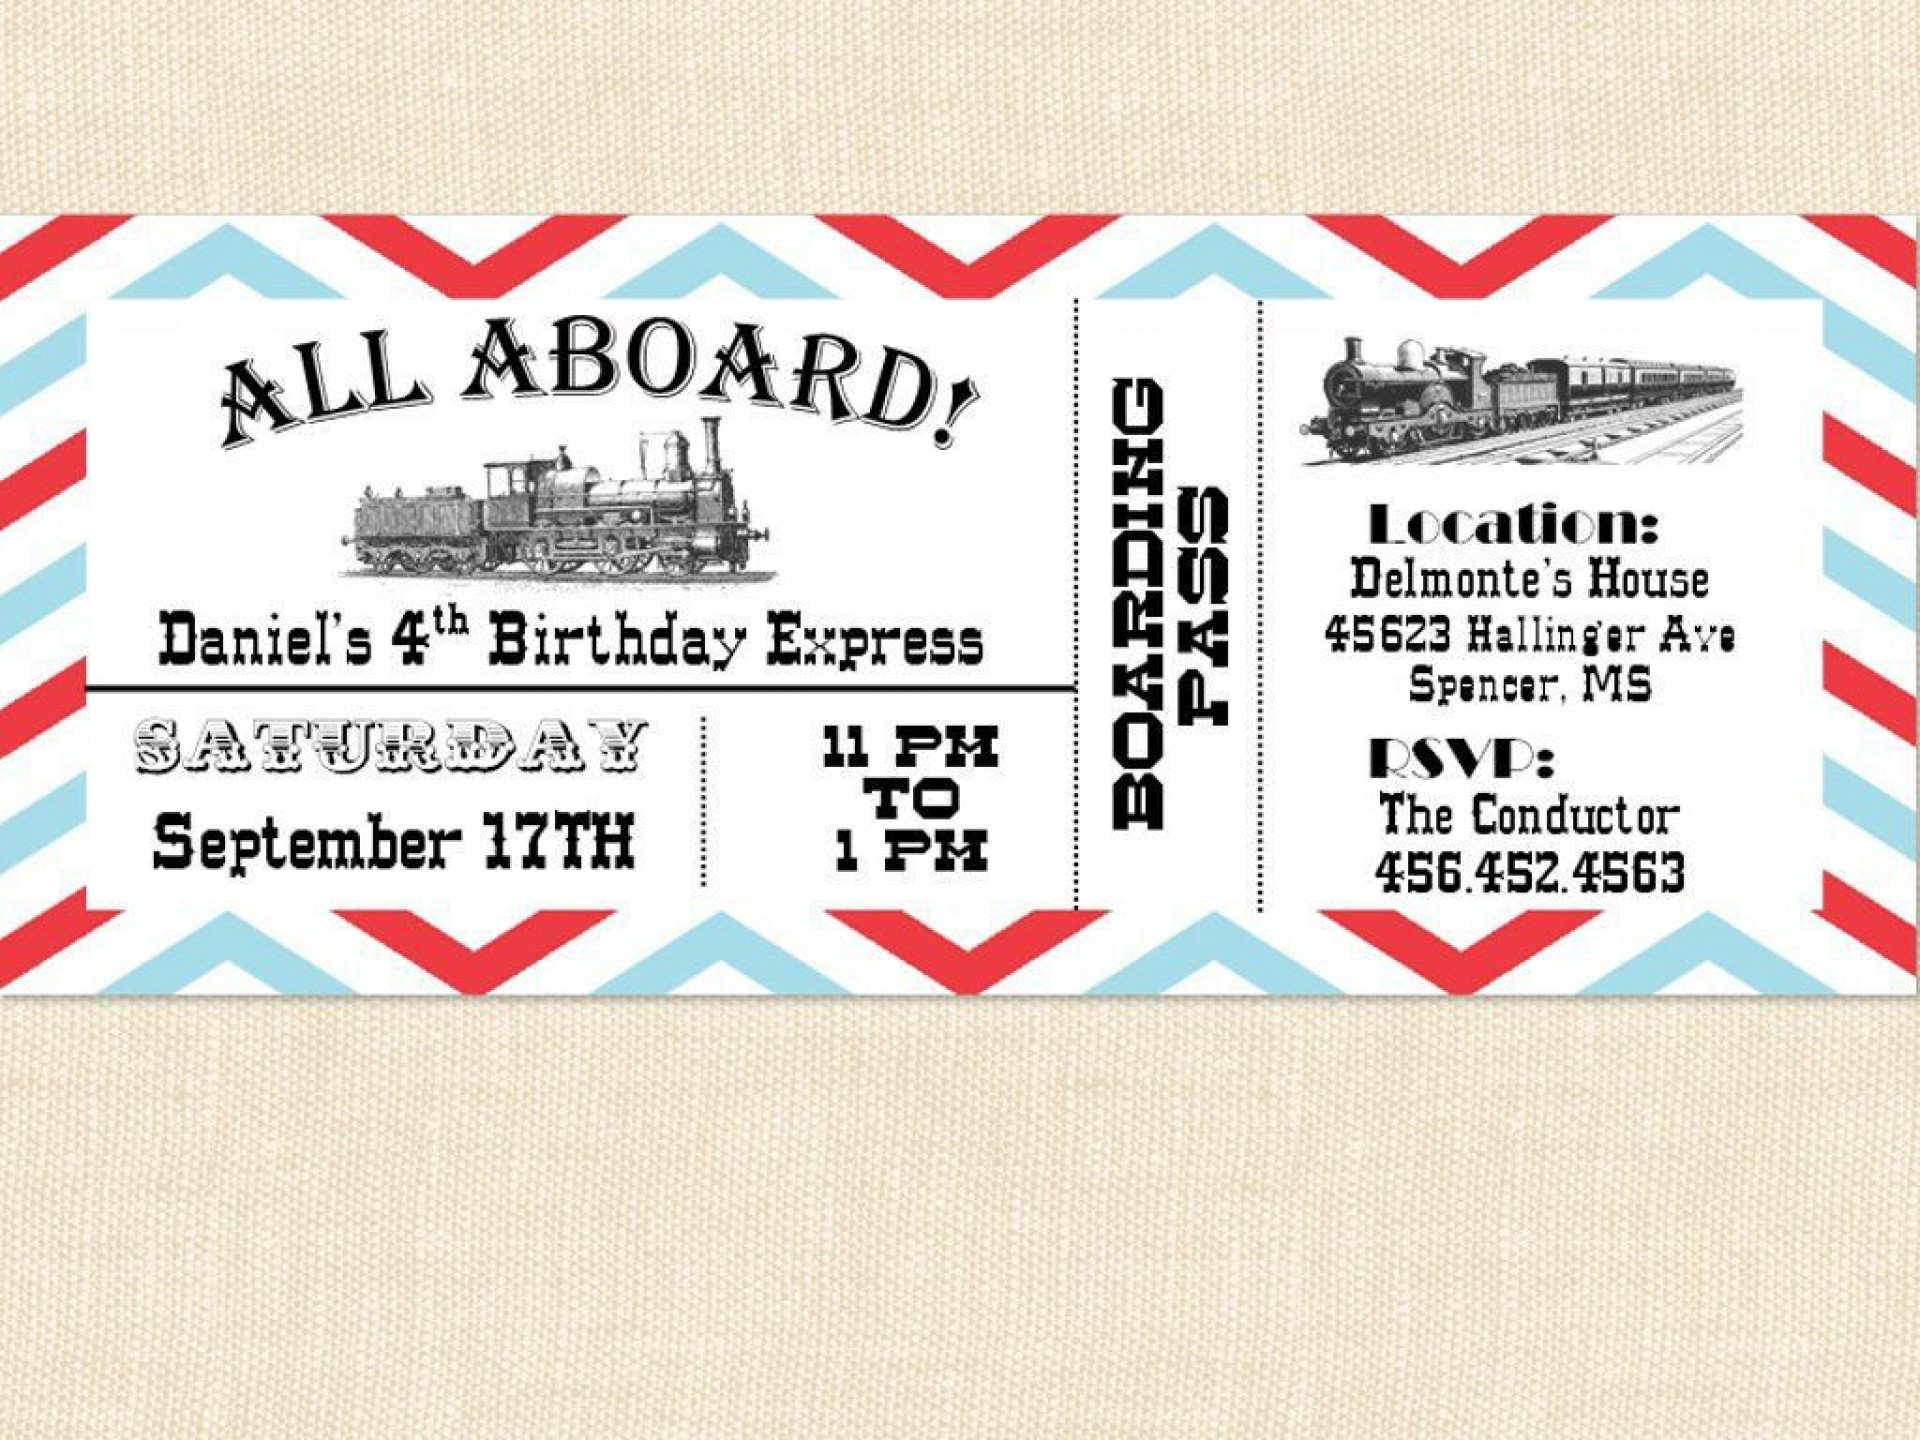 005 Outstanding Print Ticket Free Template Image  Your Own1920